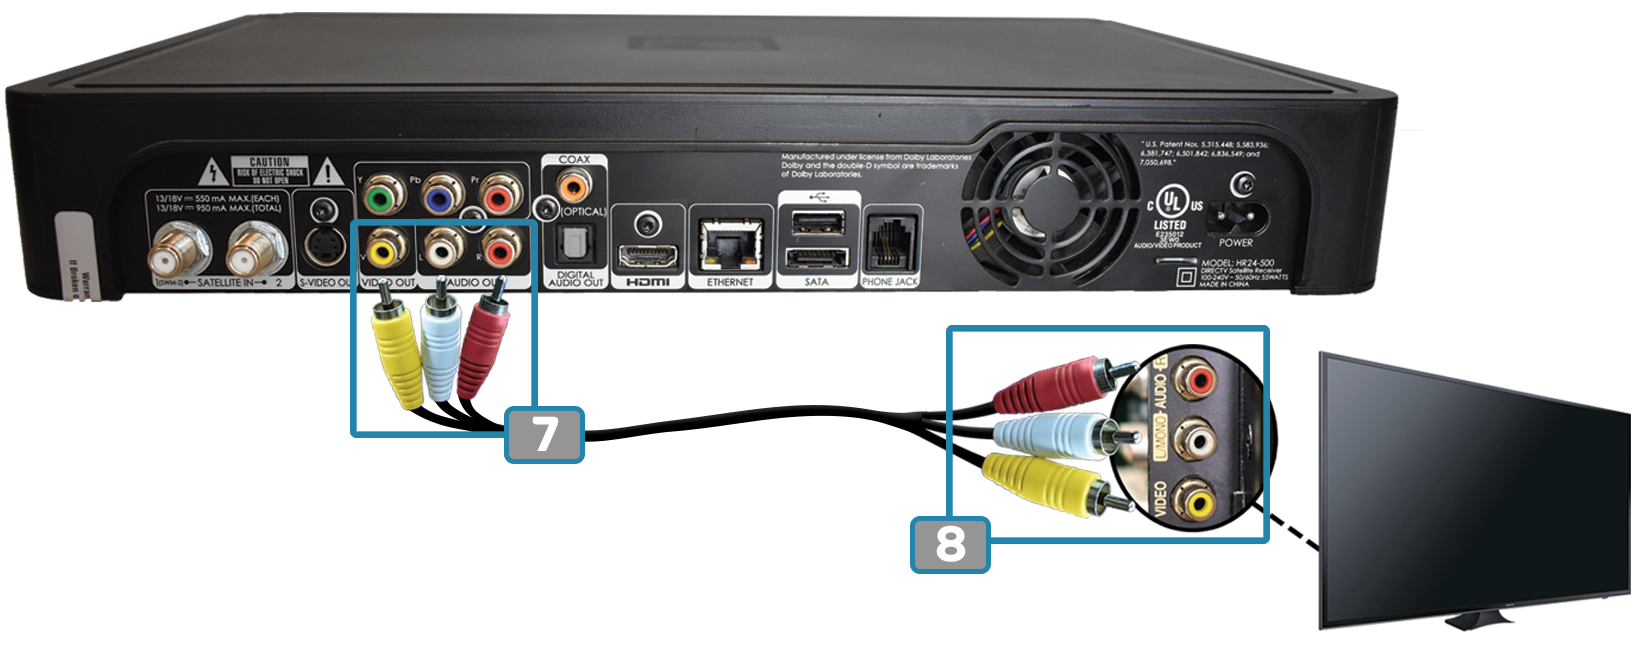 directv genie whole home wiring how to set up  how to set up